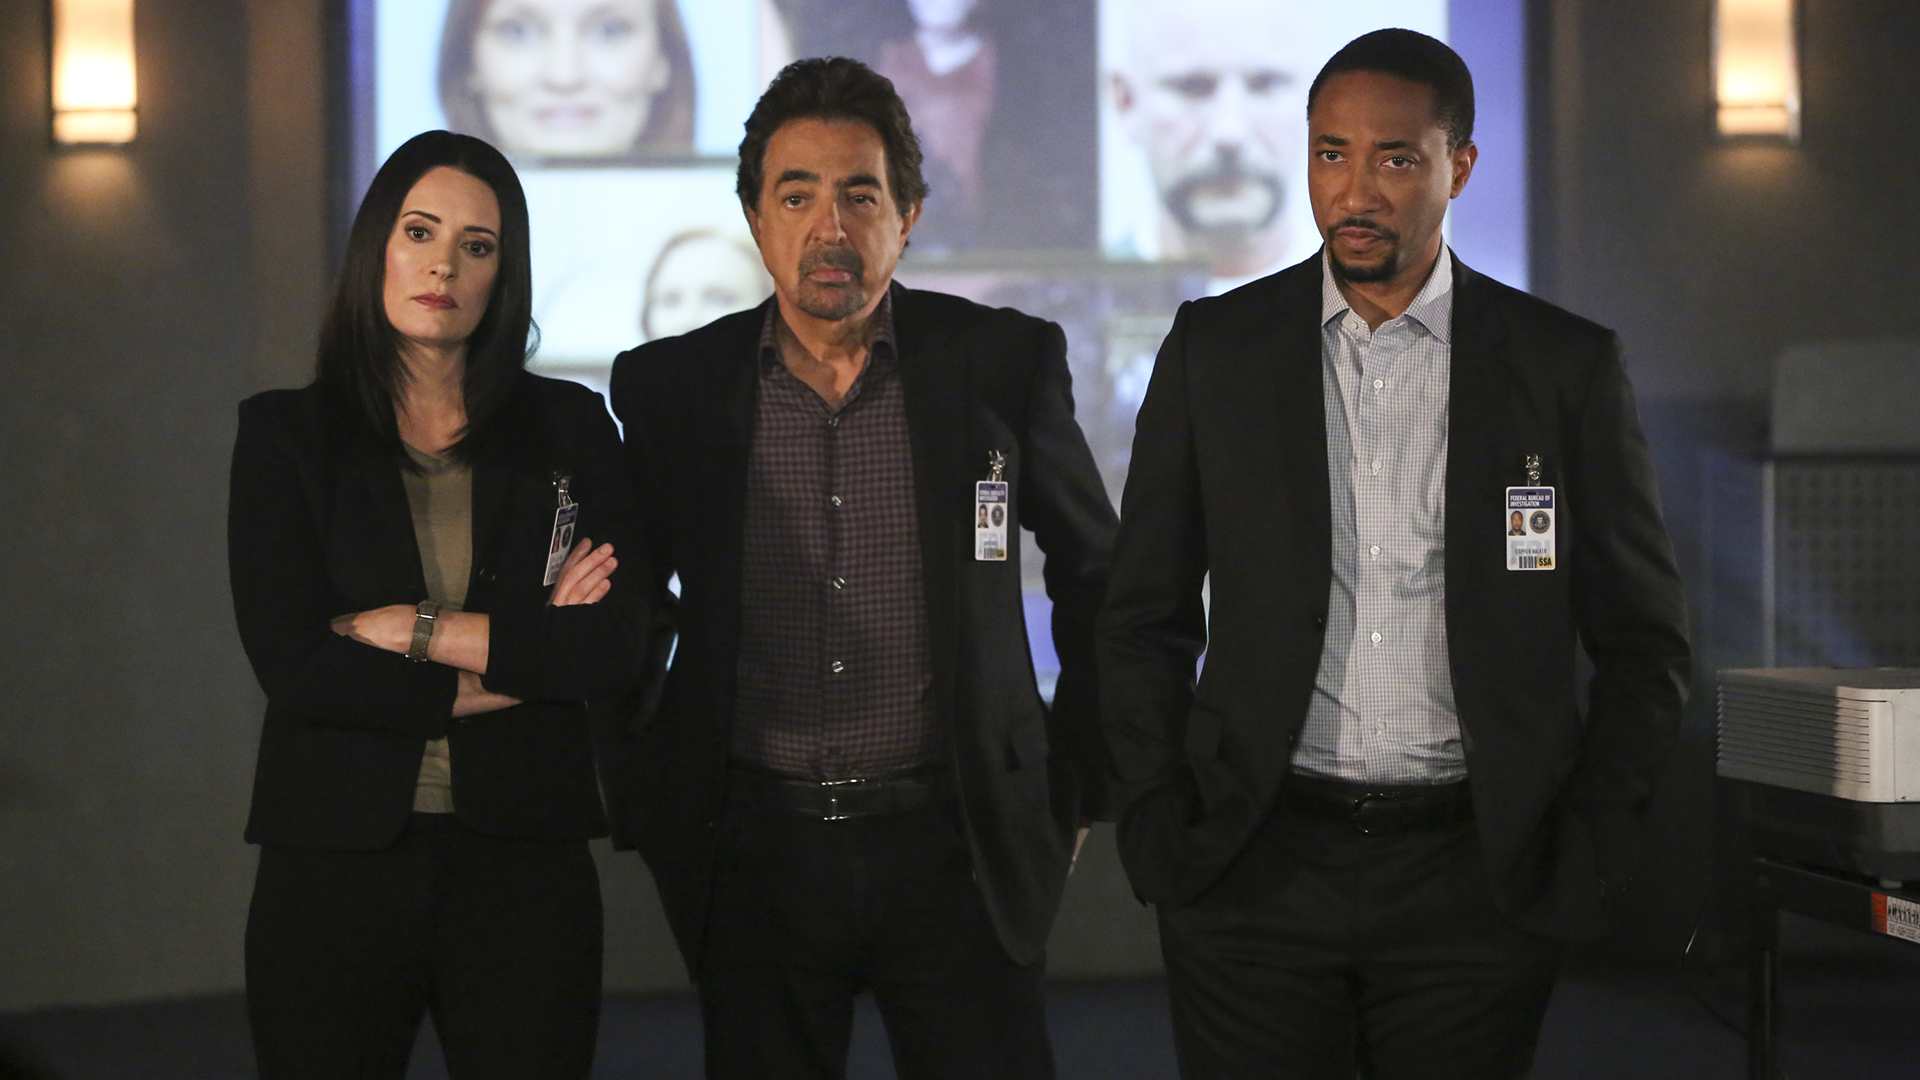 Prentiss, Rossi, and Walker listen to the new BAU members' theories.